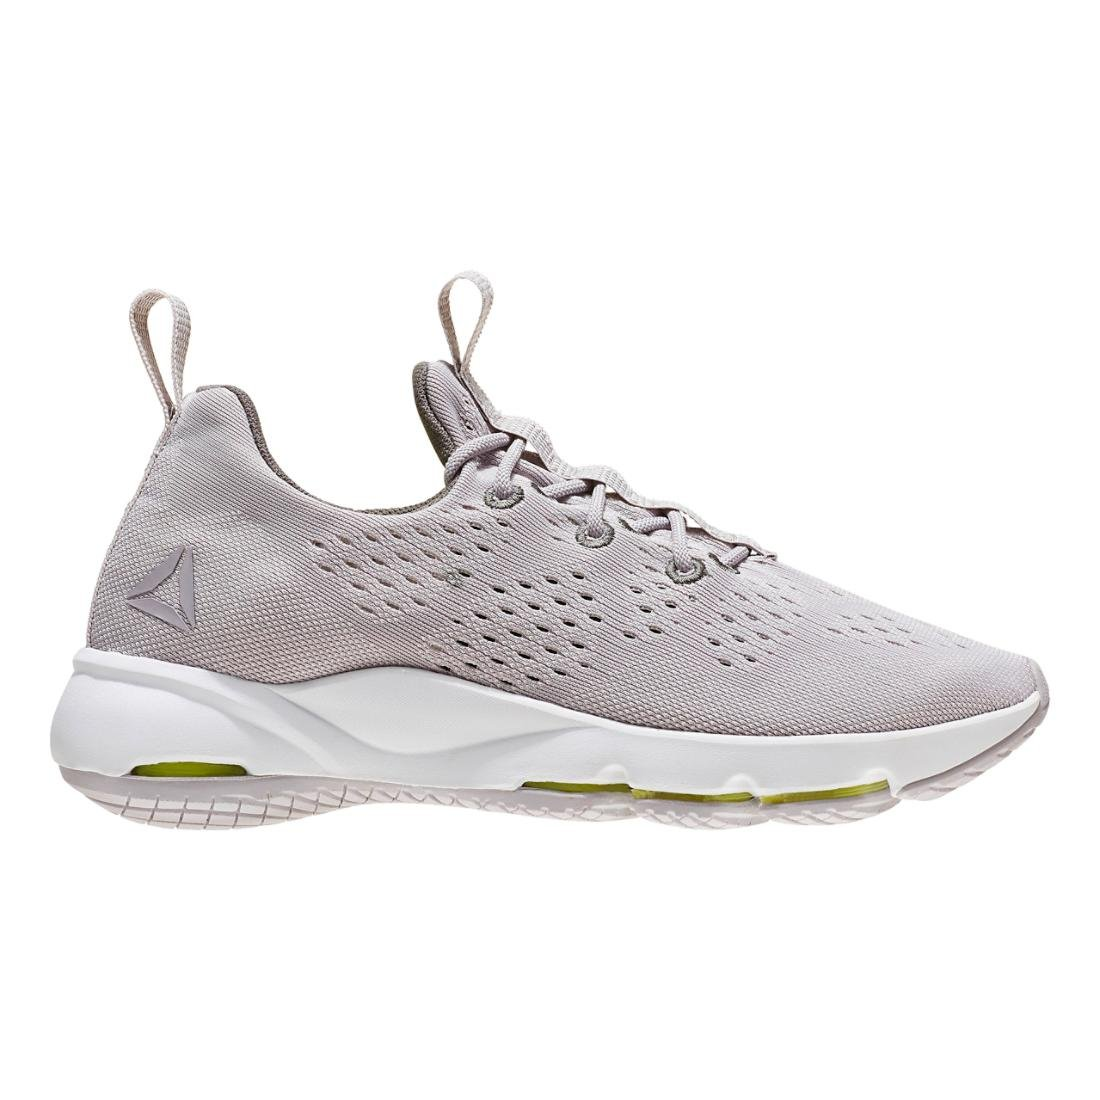 Reebok Women's Cloudride LS DMX Walking Shoe B01HH8OAAS 9 B(M) US|Whisper Grey/Lilac Ash/White/Urban Grey